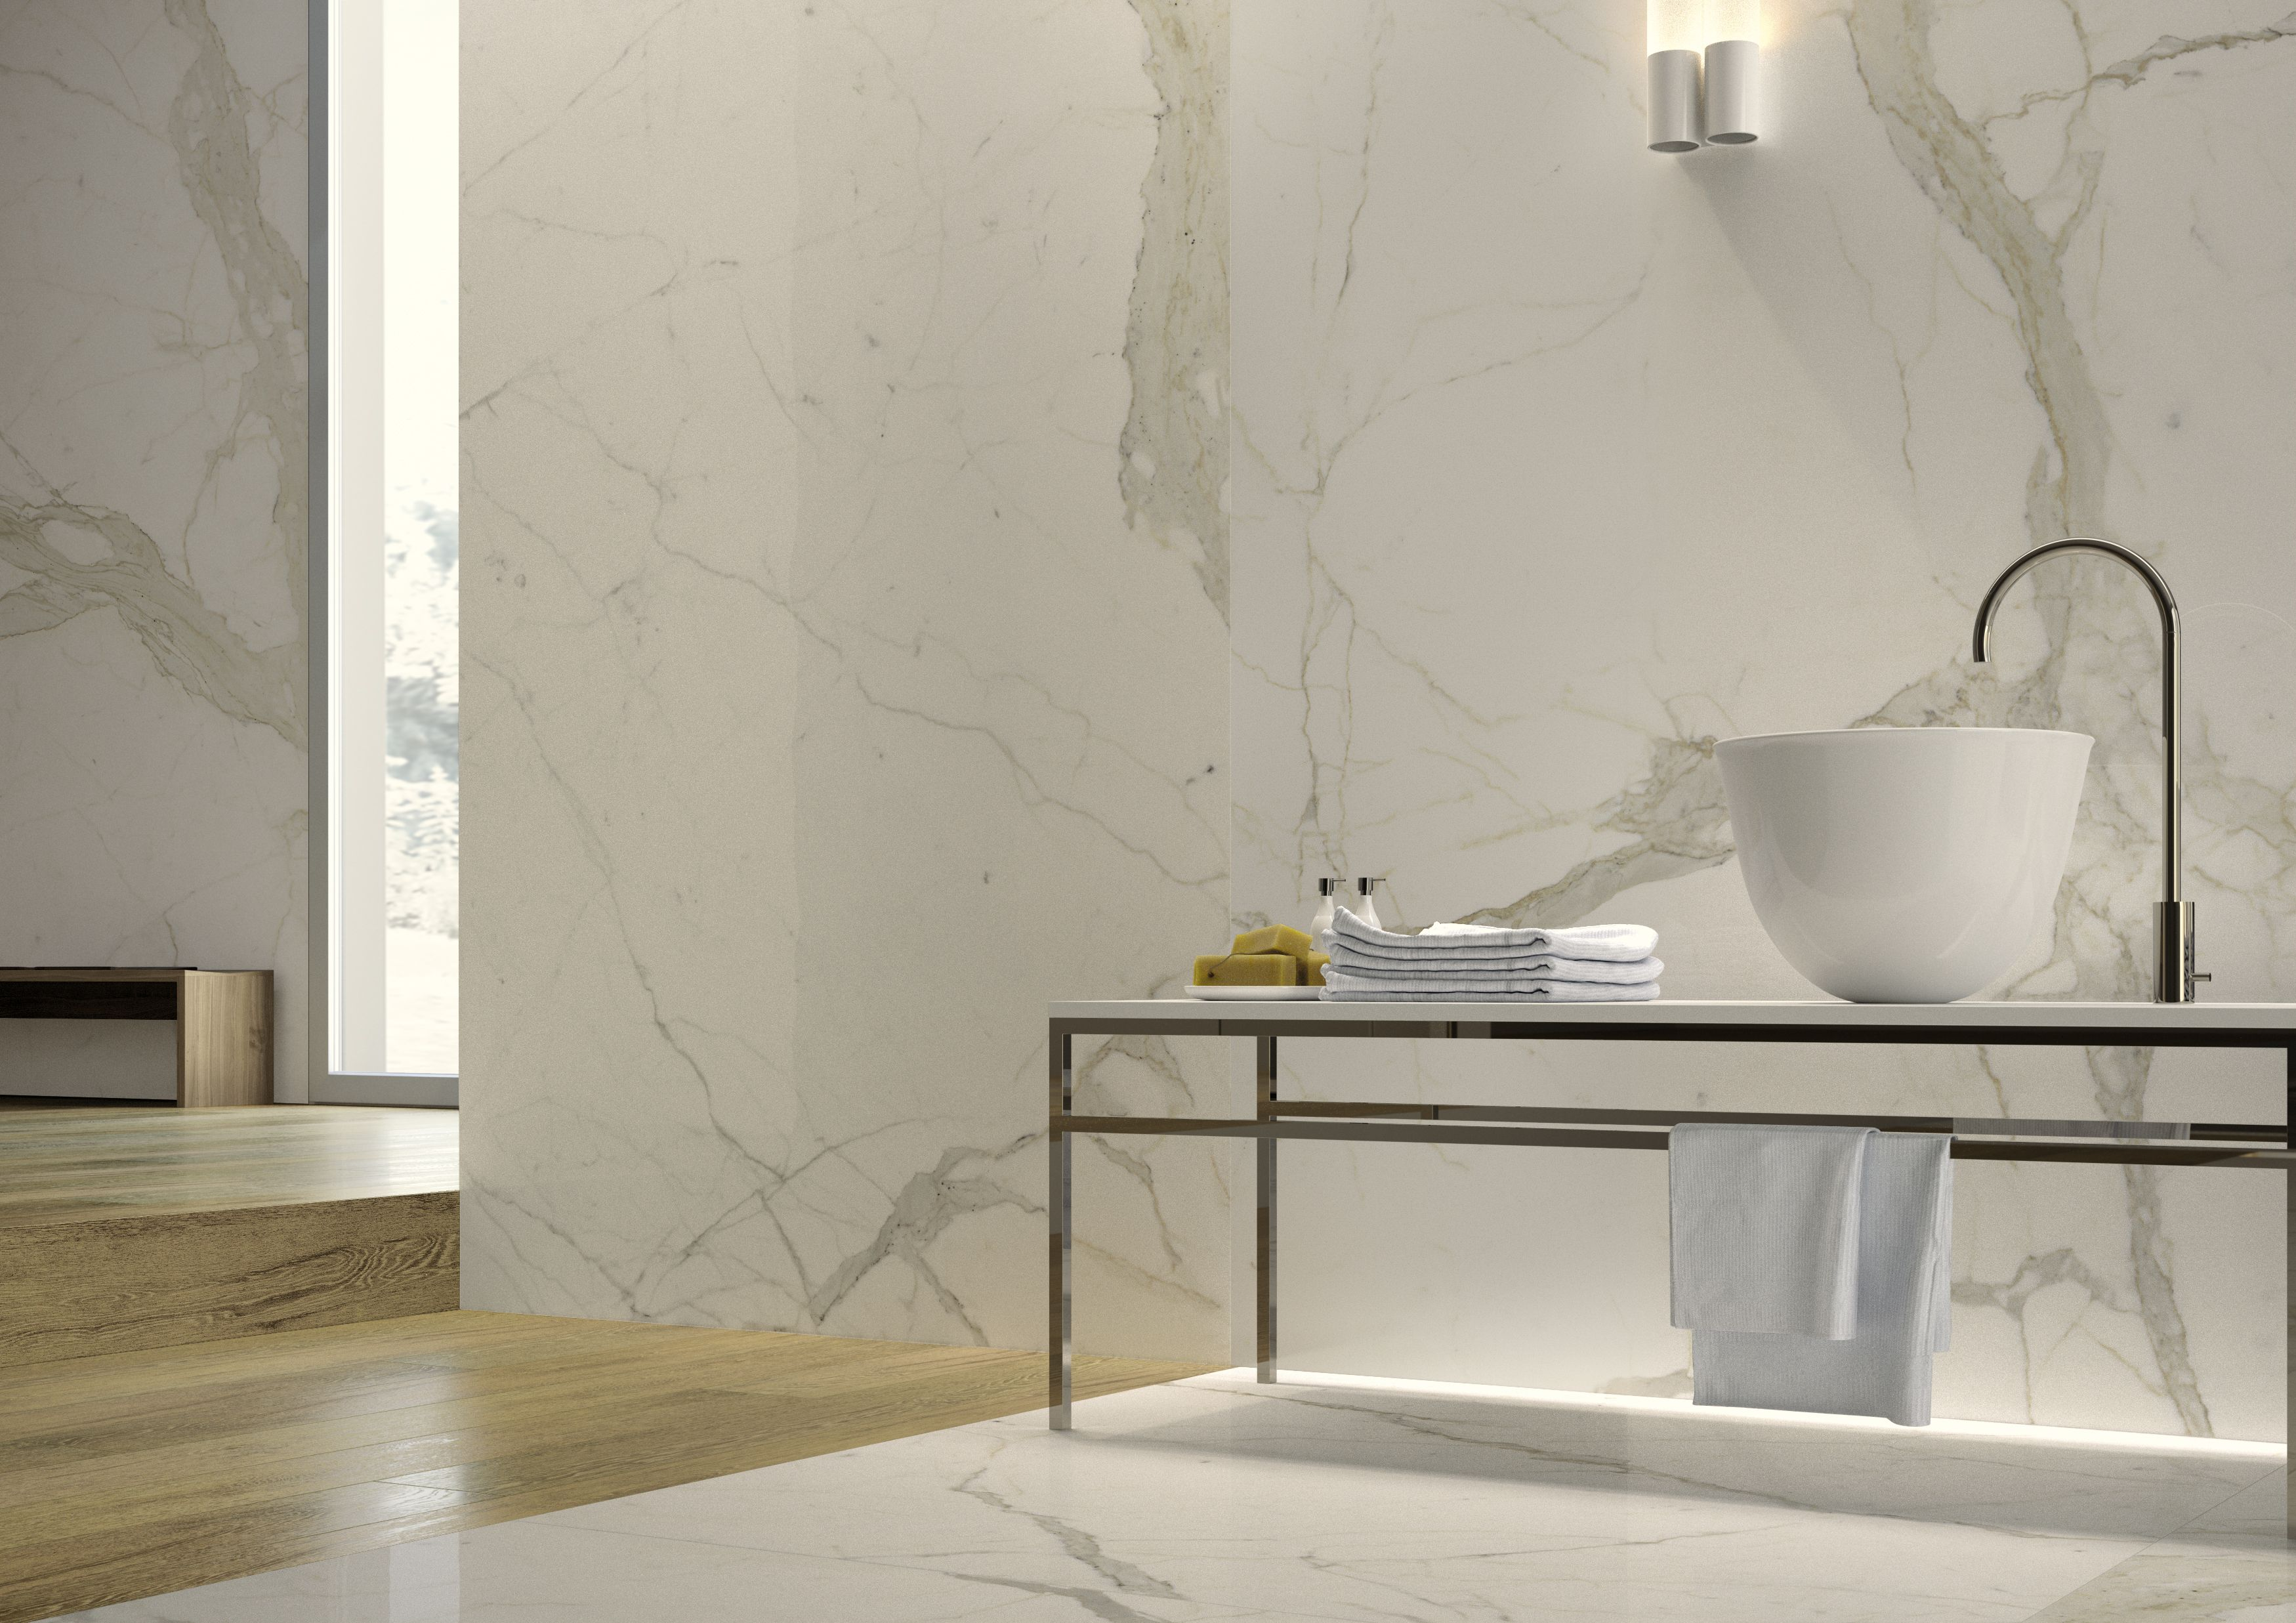 Bathroom stoneware bathroom accessories - Porcelain Marble With Gold Accessories Google Search